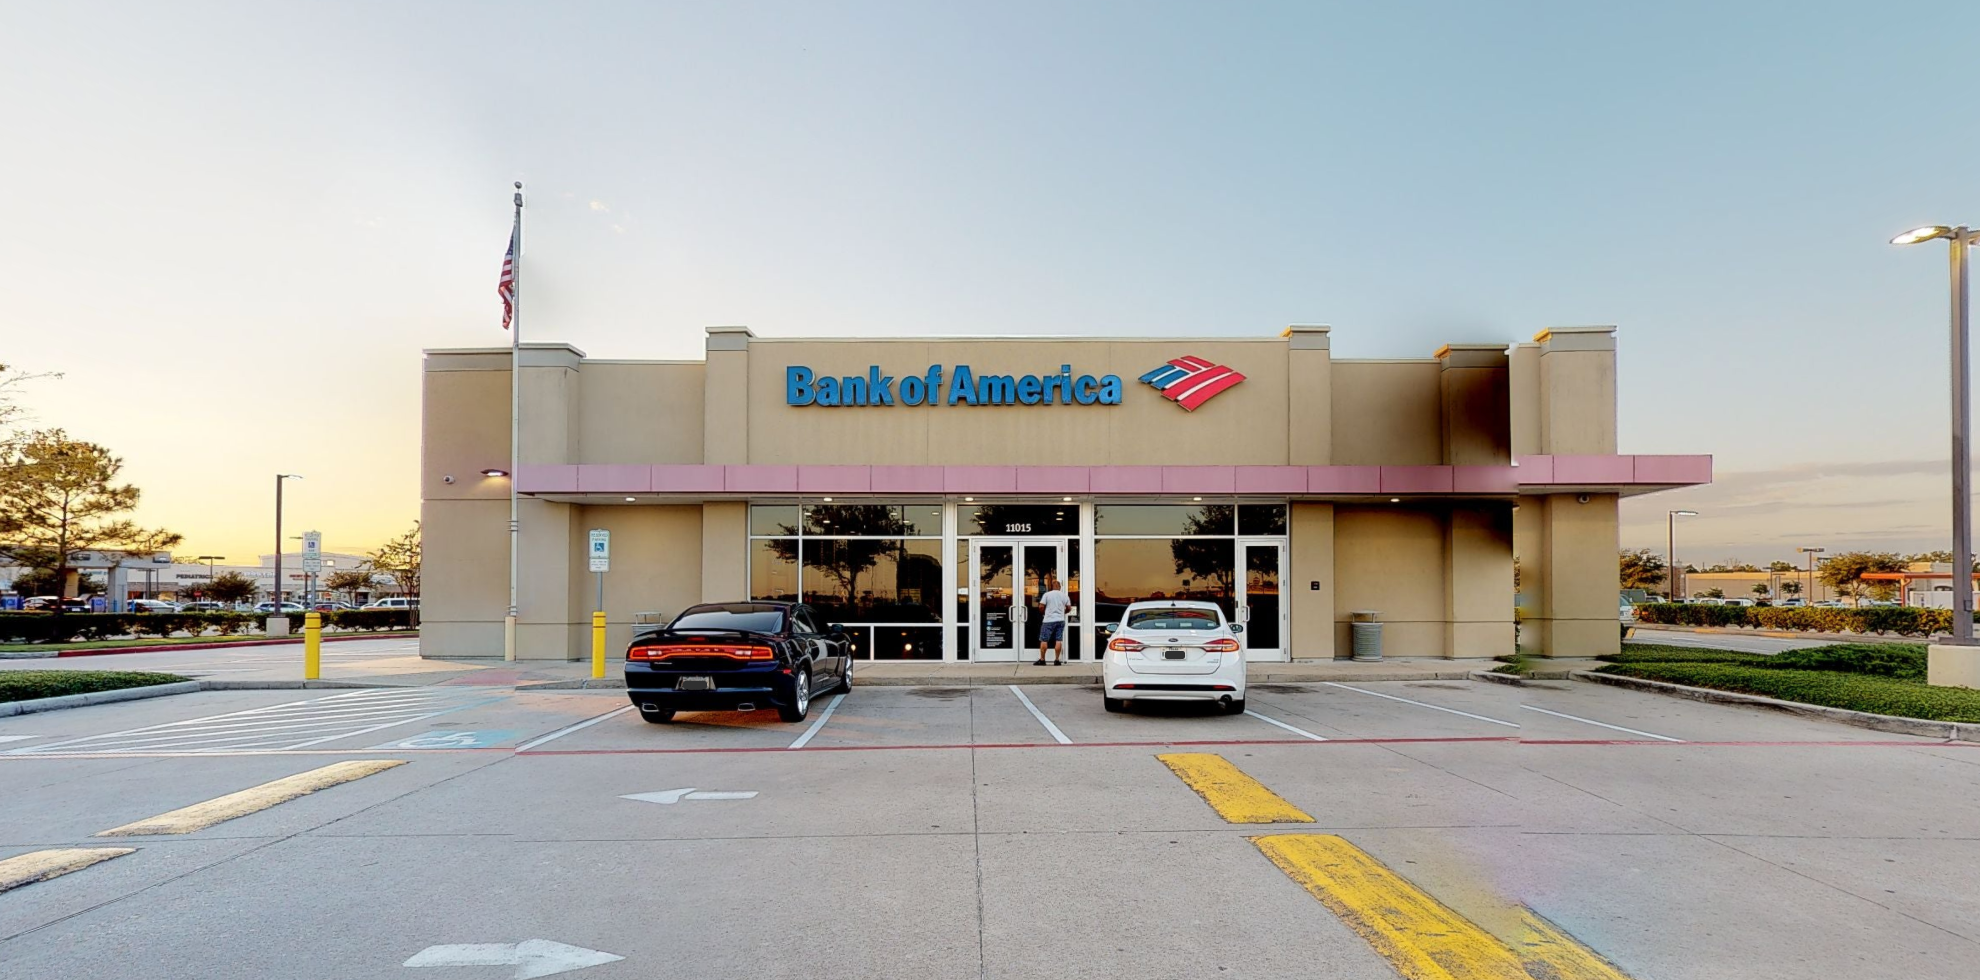 Bank of America financial center with drive-thru ATM | 11015 Shadow Creek Pkwy, Pearland, TX 77584